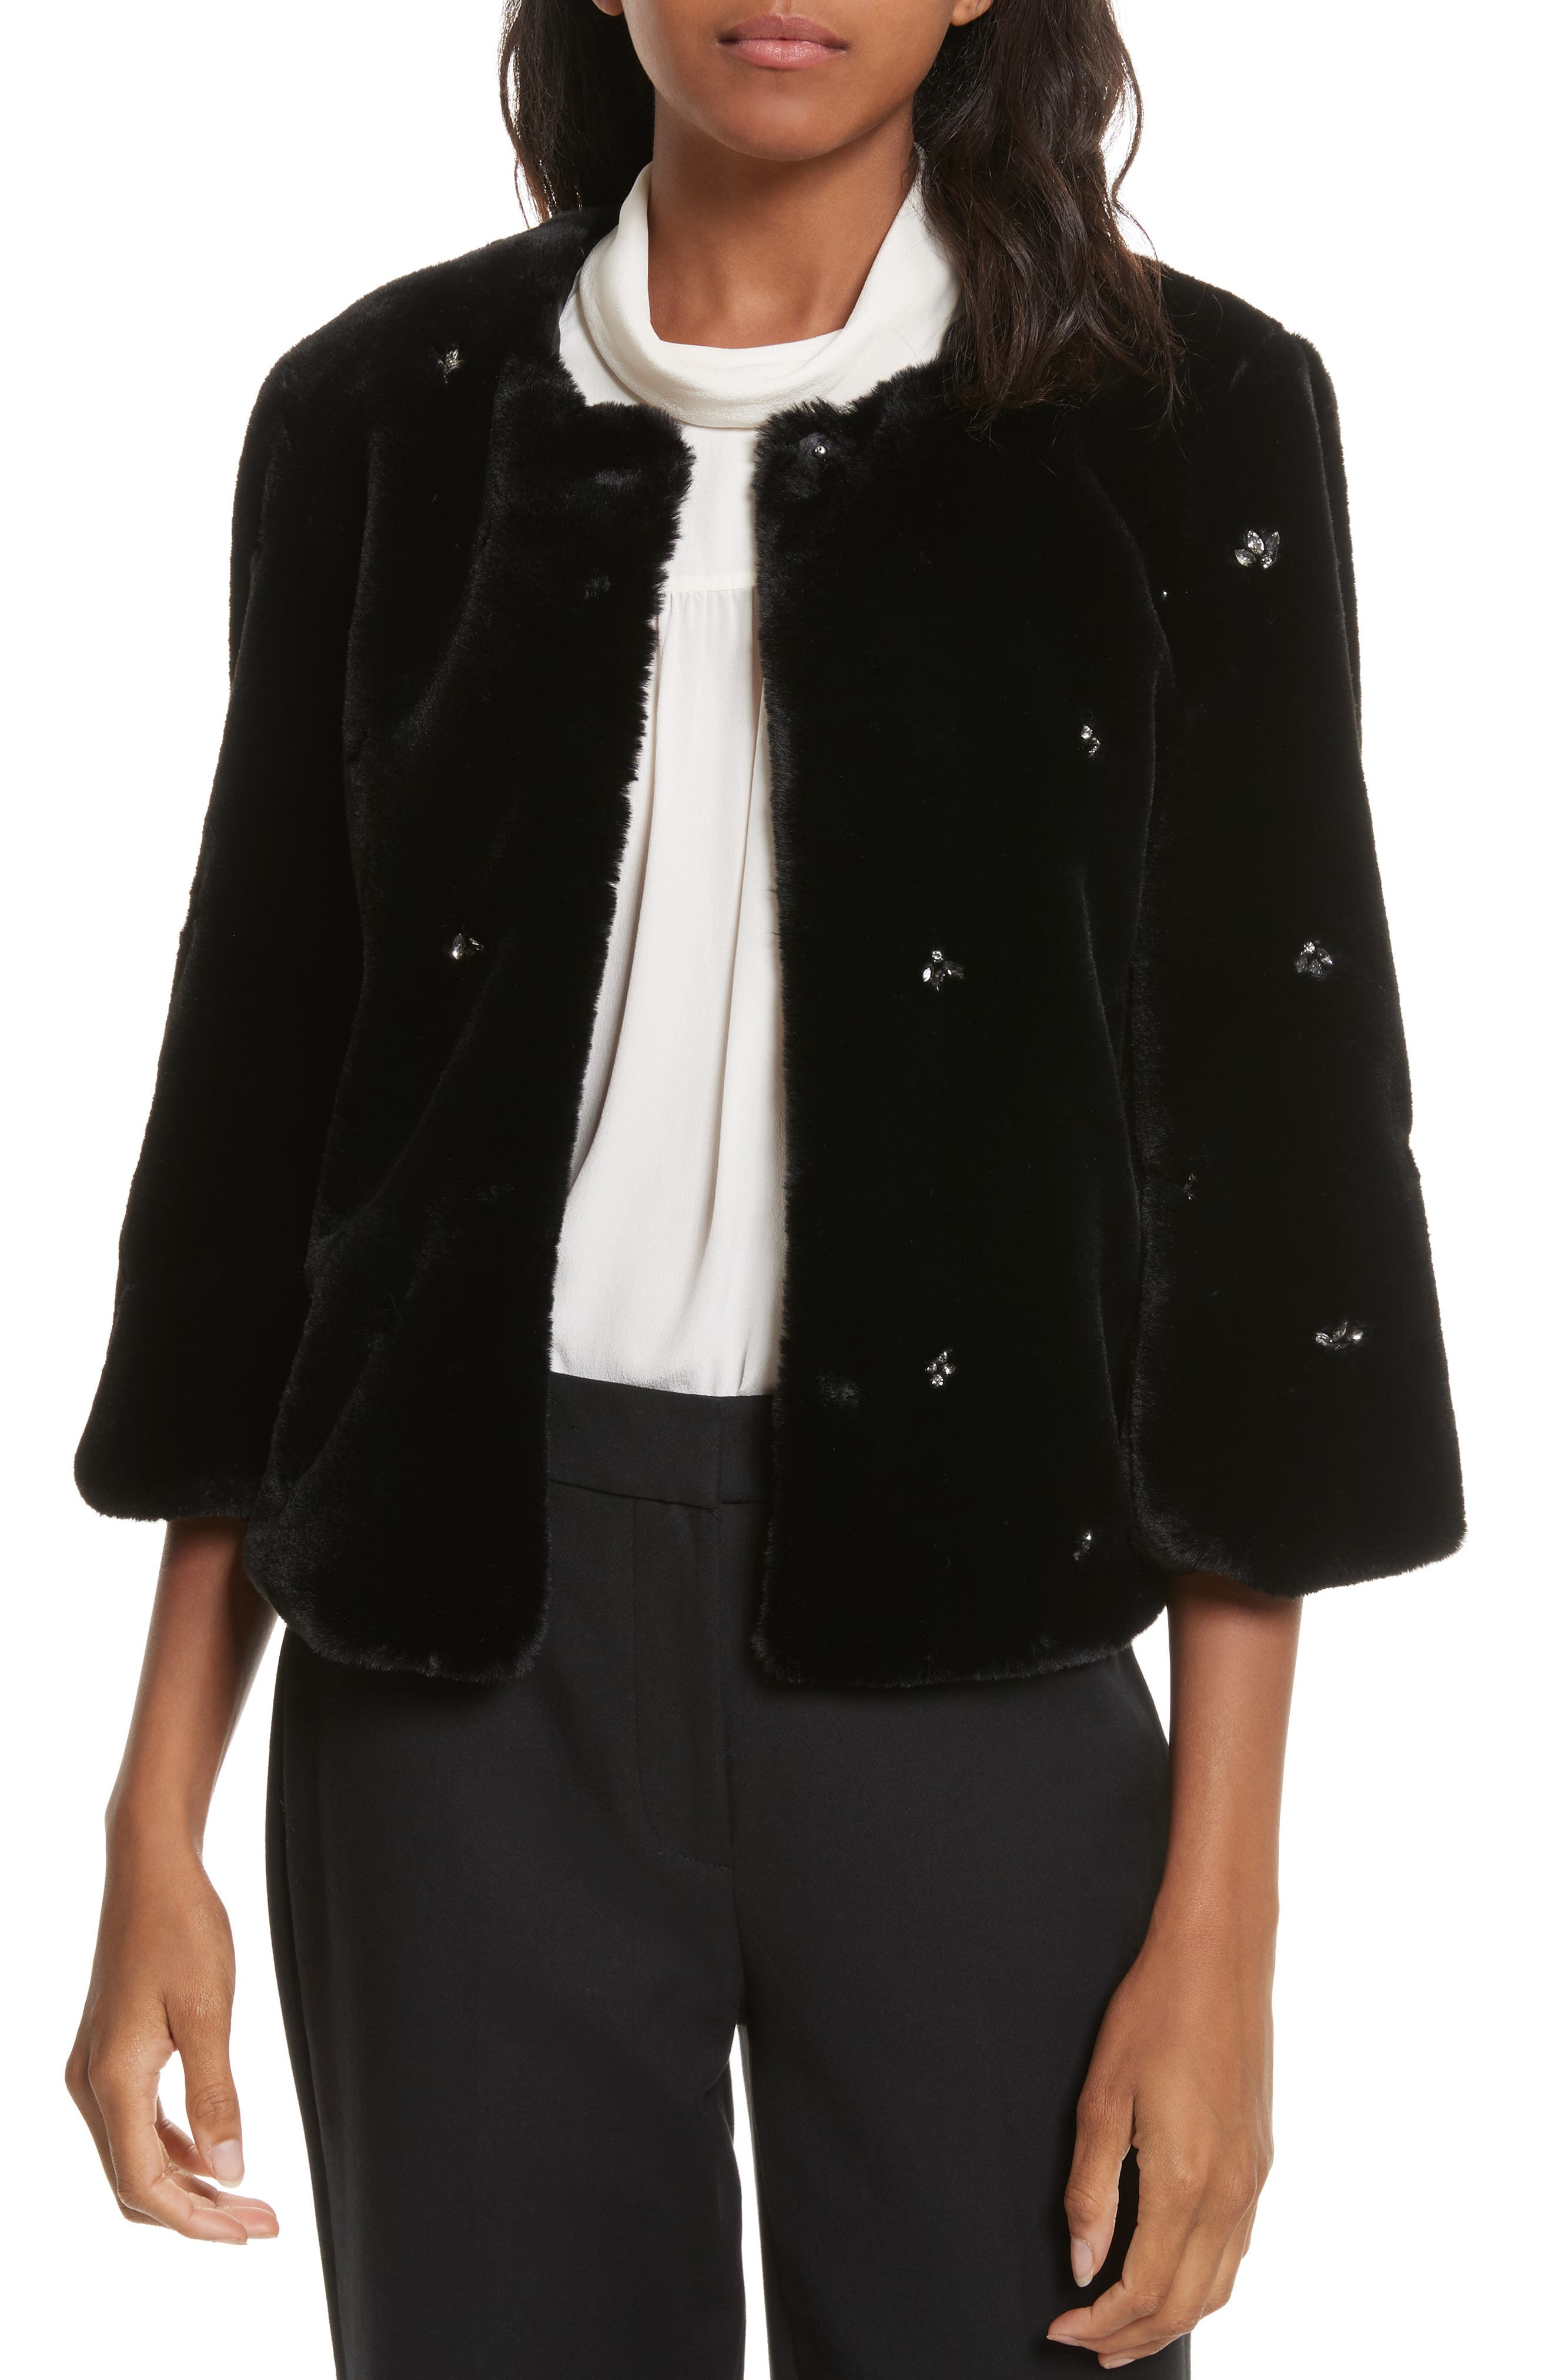 Nayland Embellished Faux Fur Jacket,                             Main thumbnail 1, color,